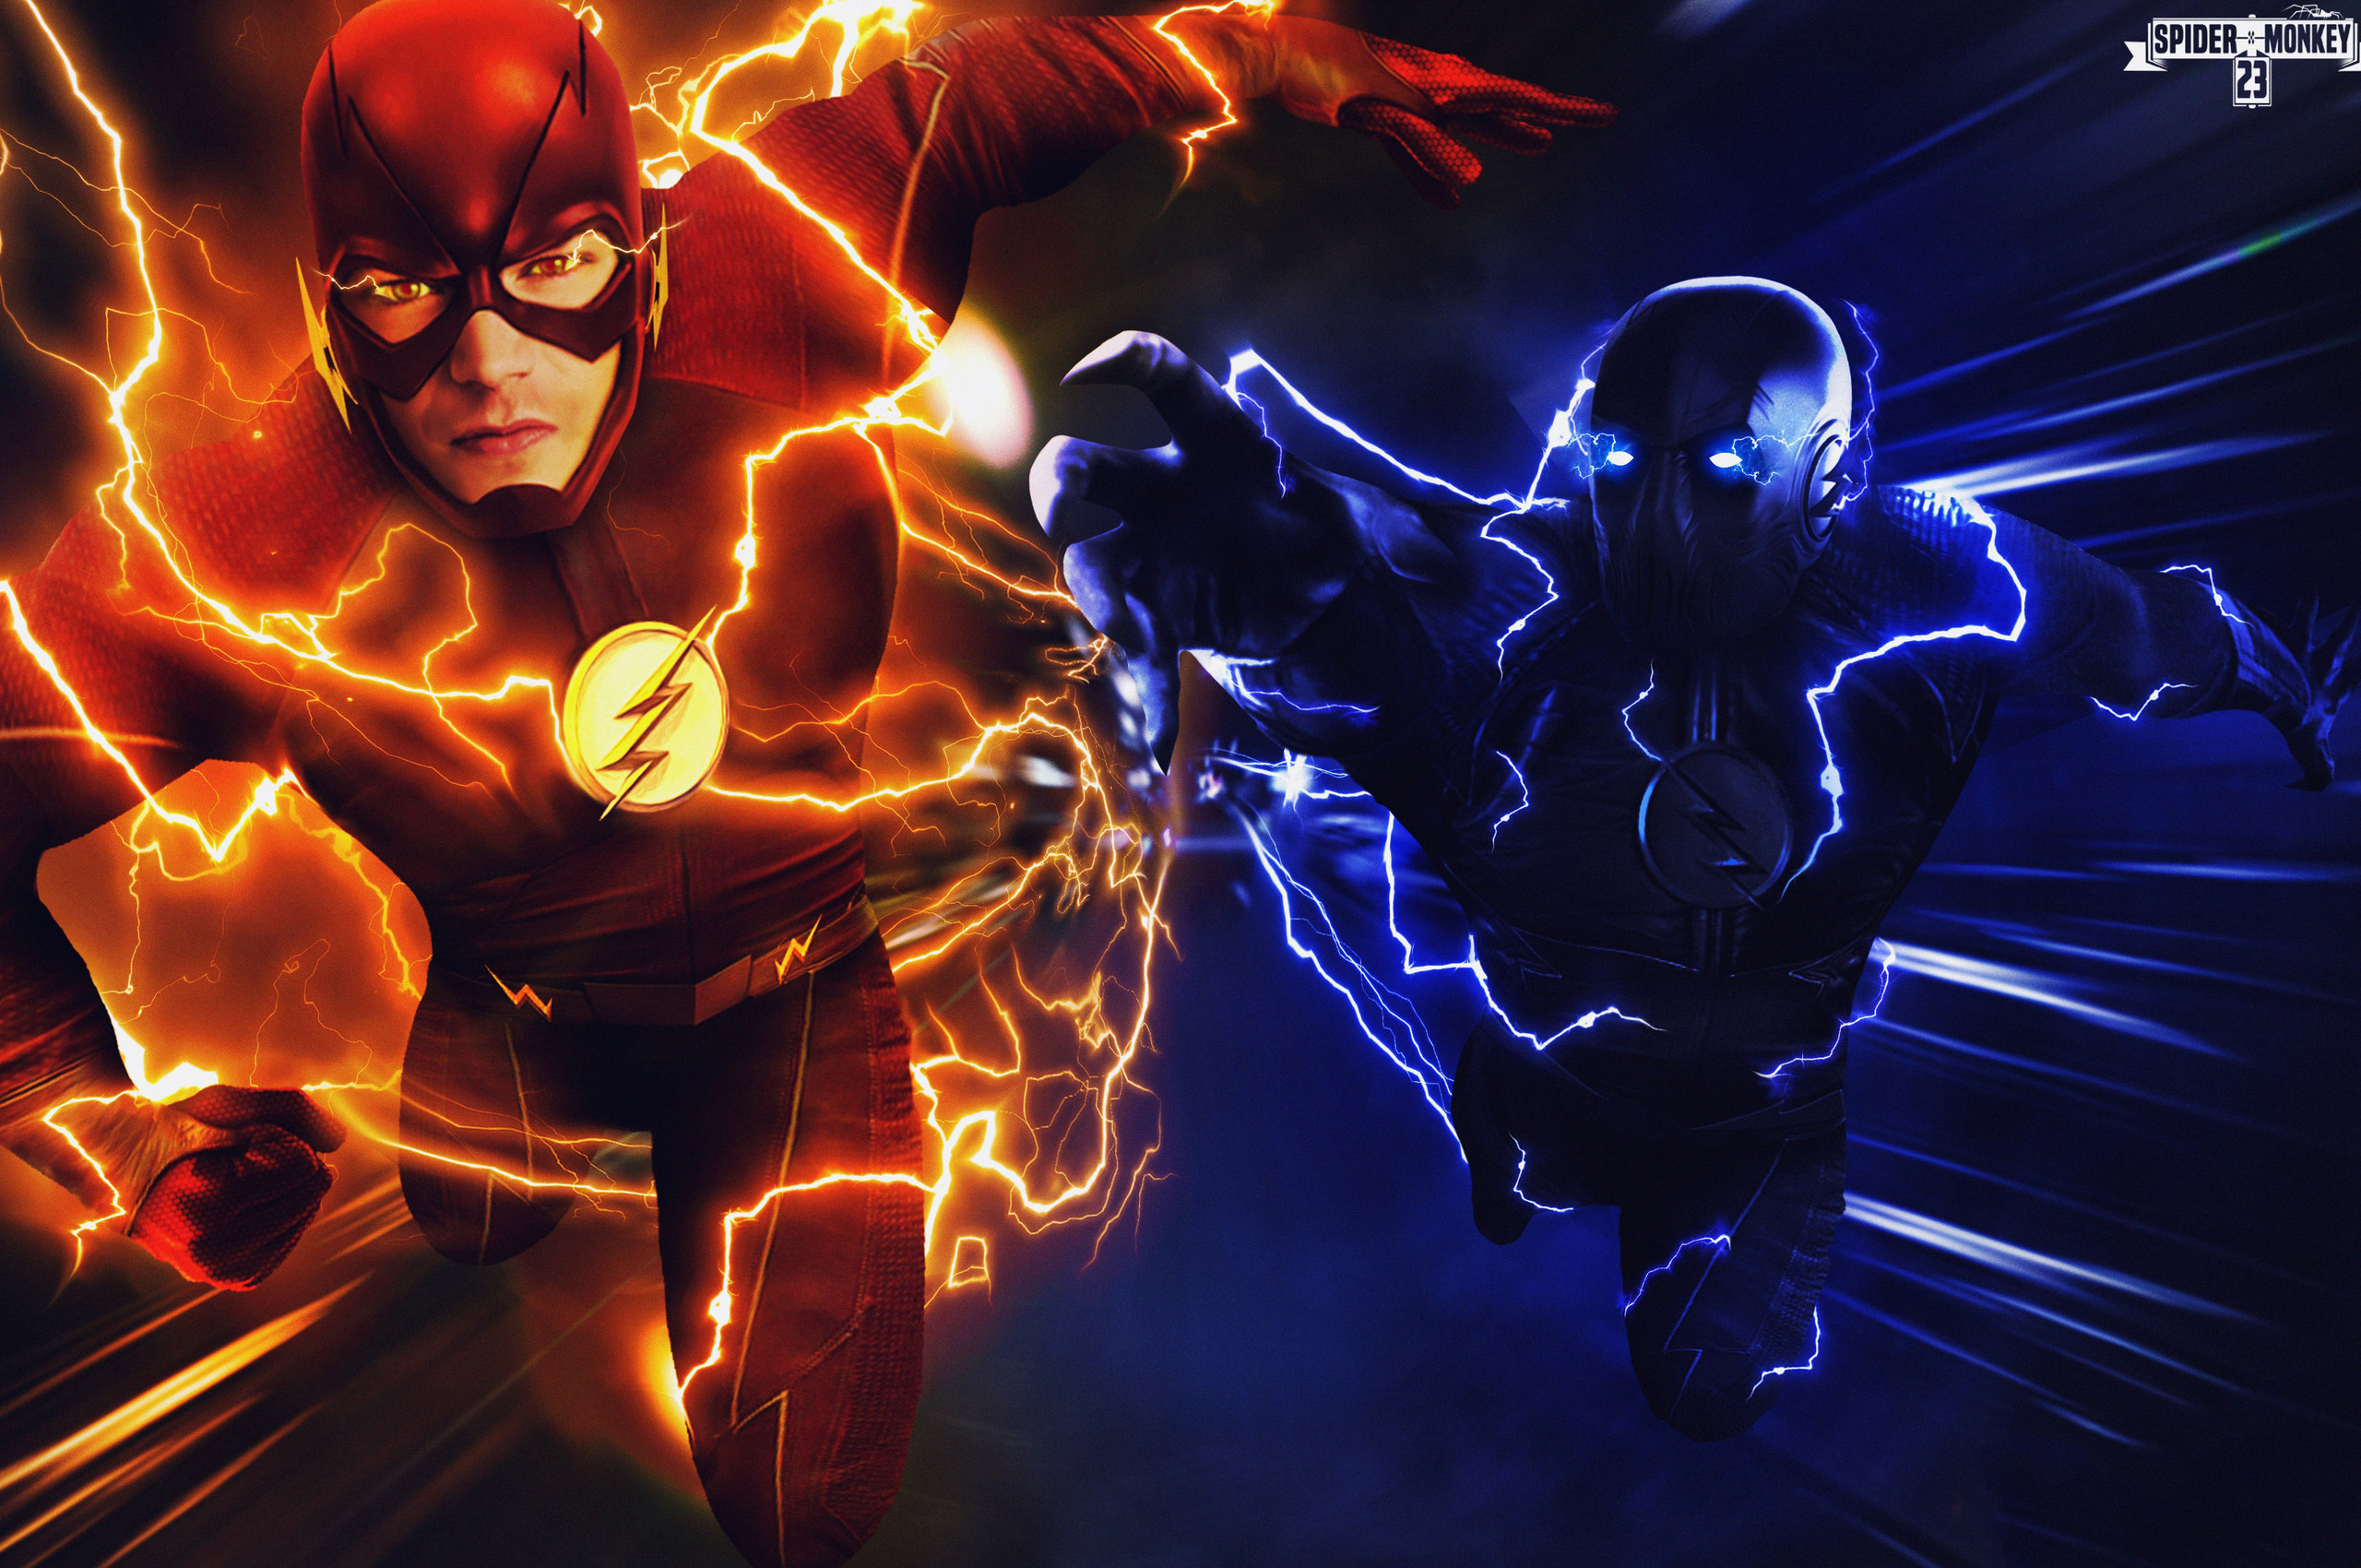 2560x1700 The Flash Vs Zoom Chromebook Pixel Hd 4k Wallpapers Images Backgrounds Photos And Pictures